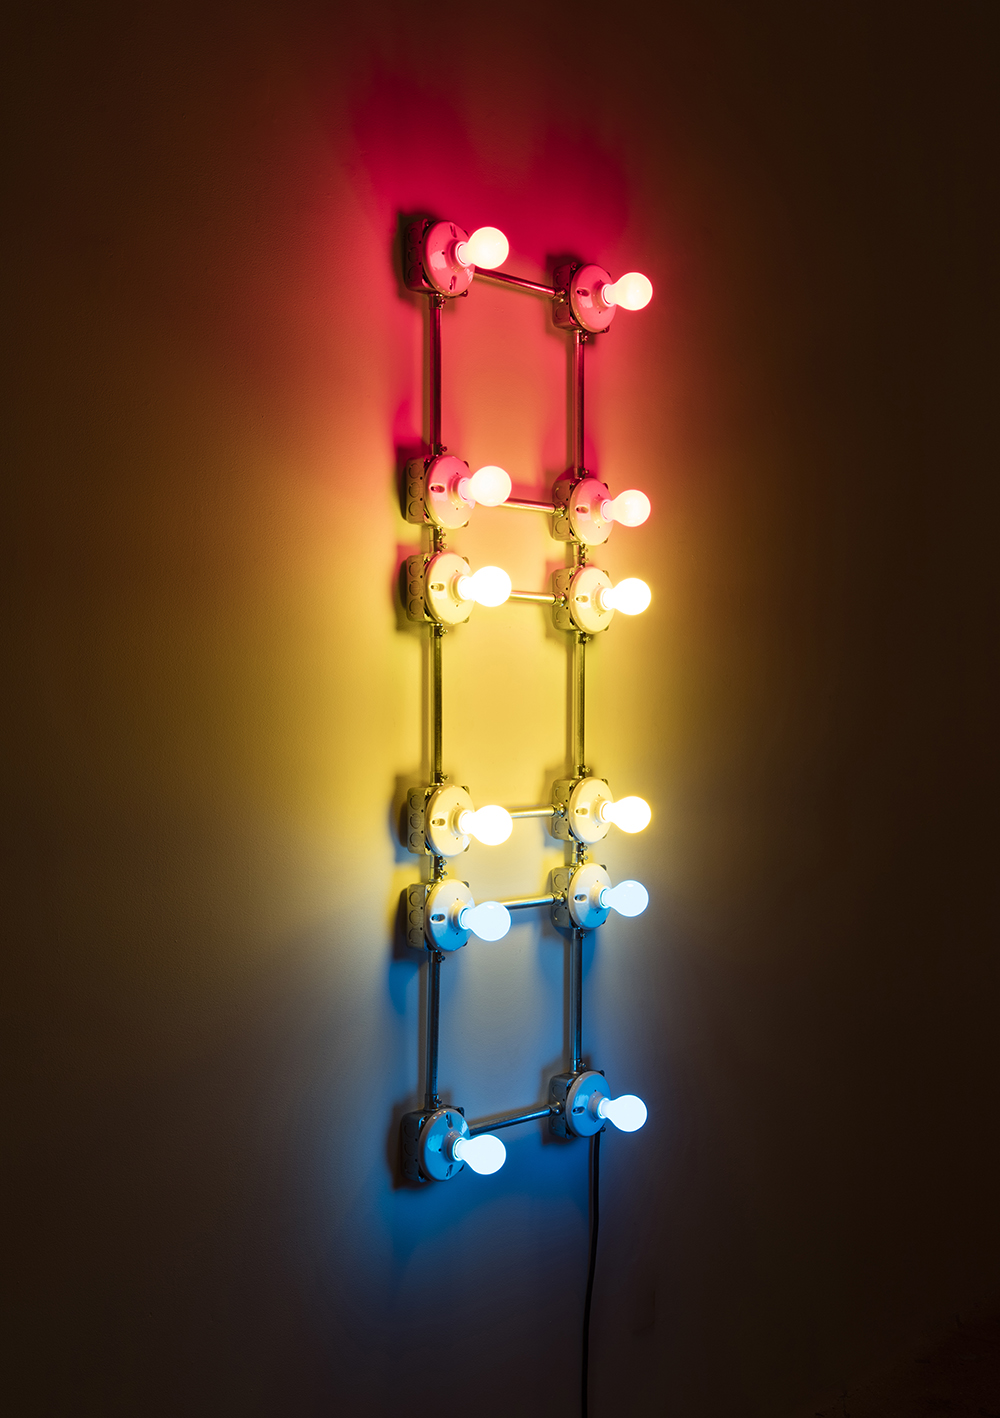 G.T. Pellizzi. <em>Conduits in Red, Yellow and Blue (Figure 67)</em>, 2016. Galvanized steel, copper wire, porcelain fixtures and ceramic coated light bulbs, 54 x 18 inches